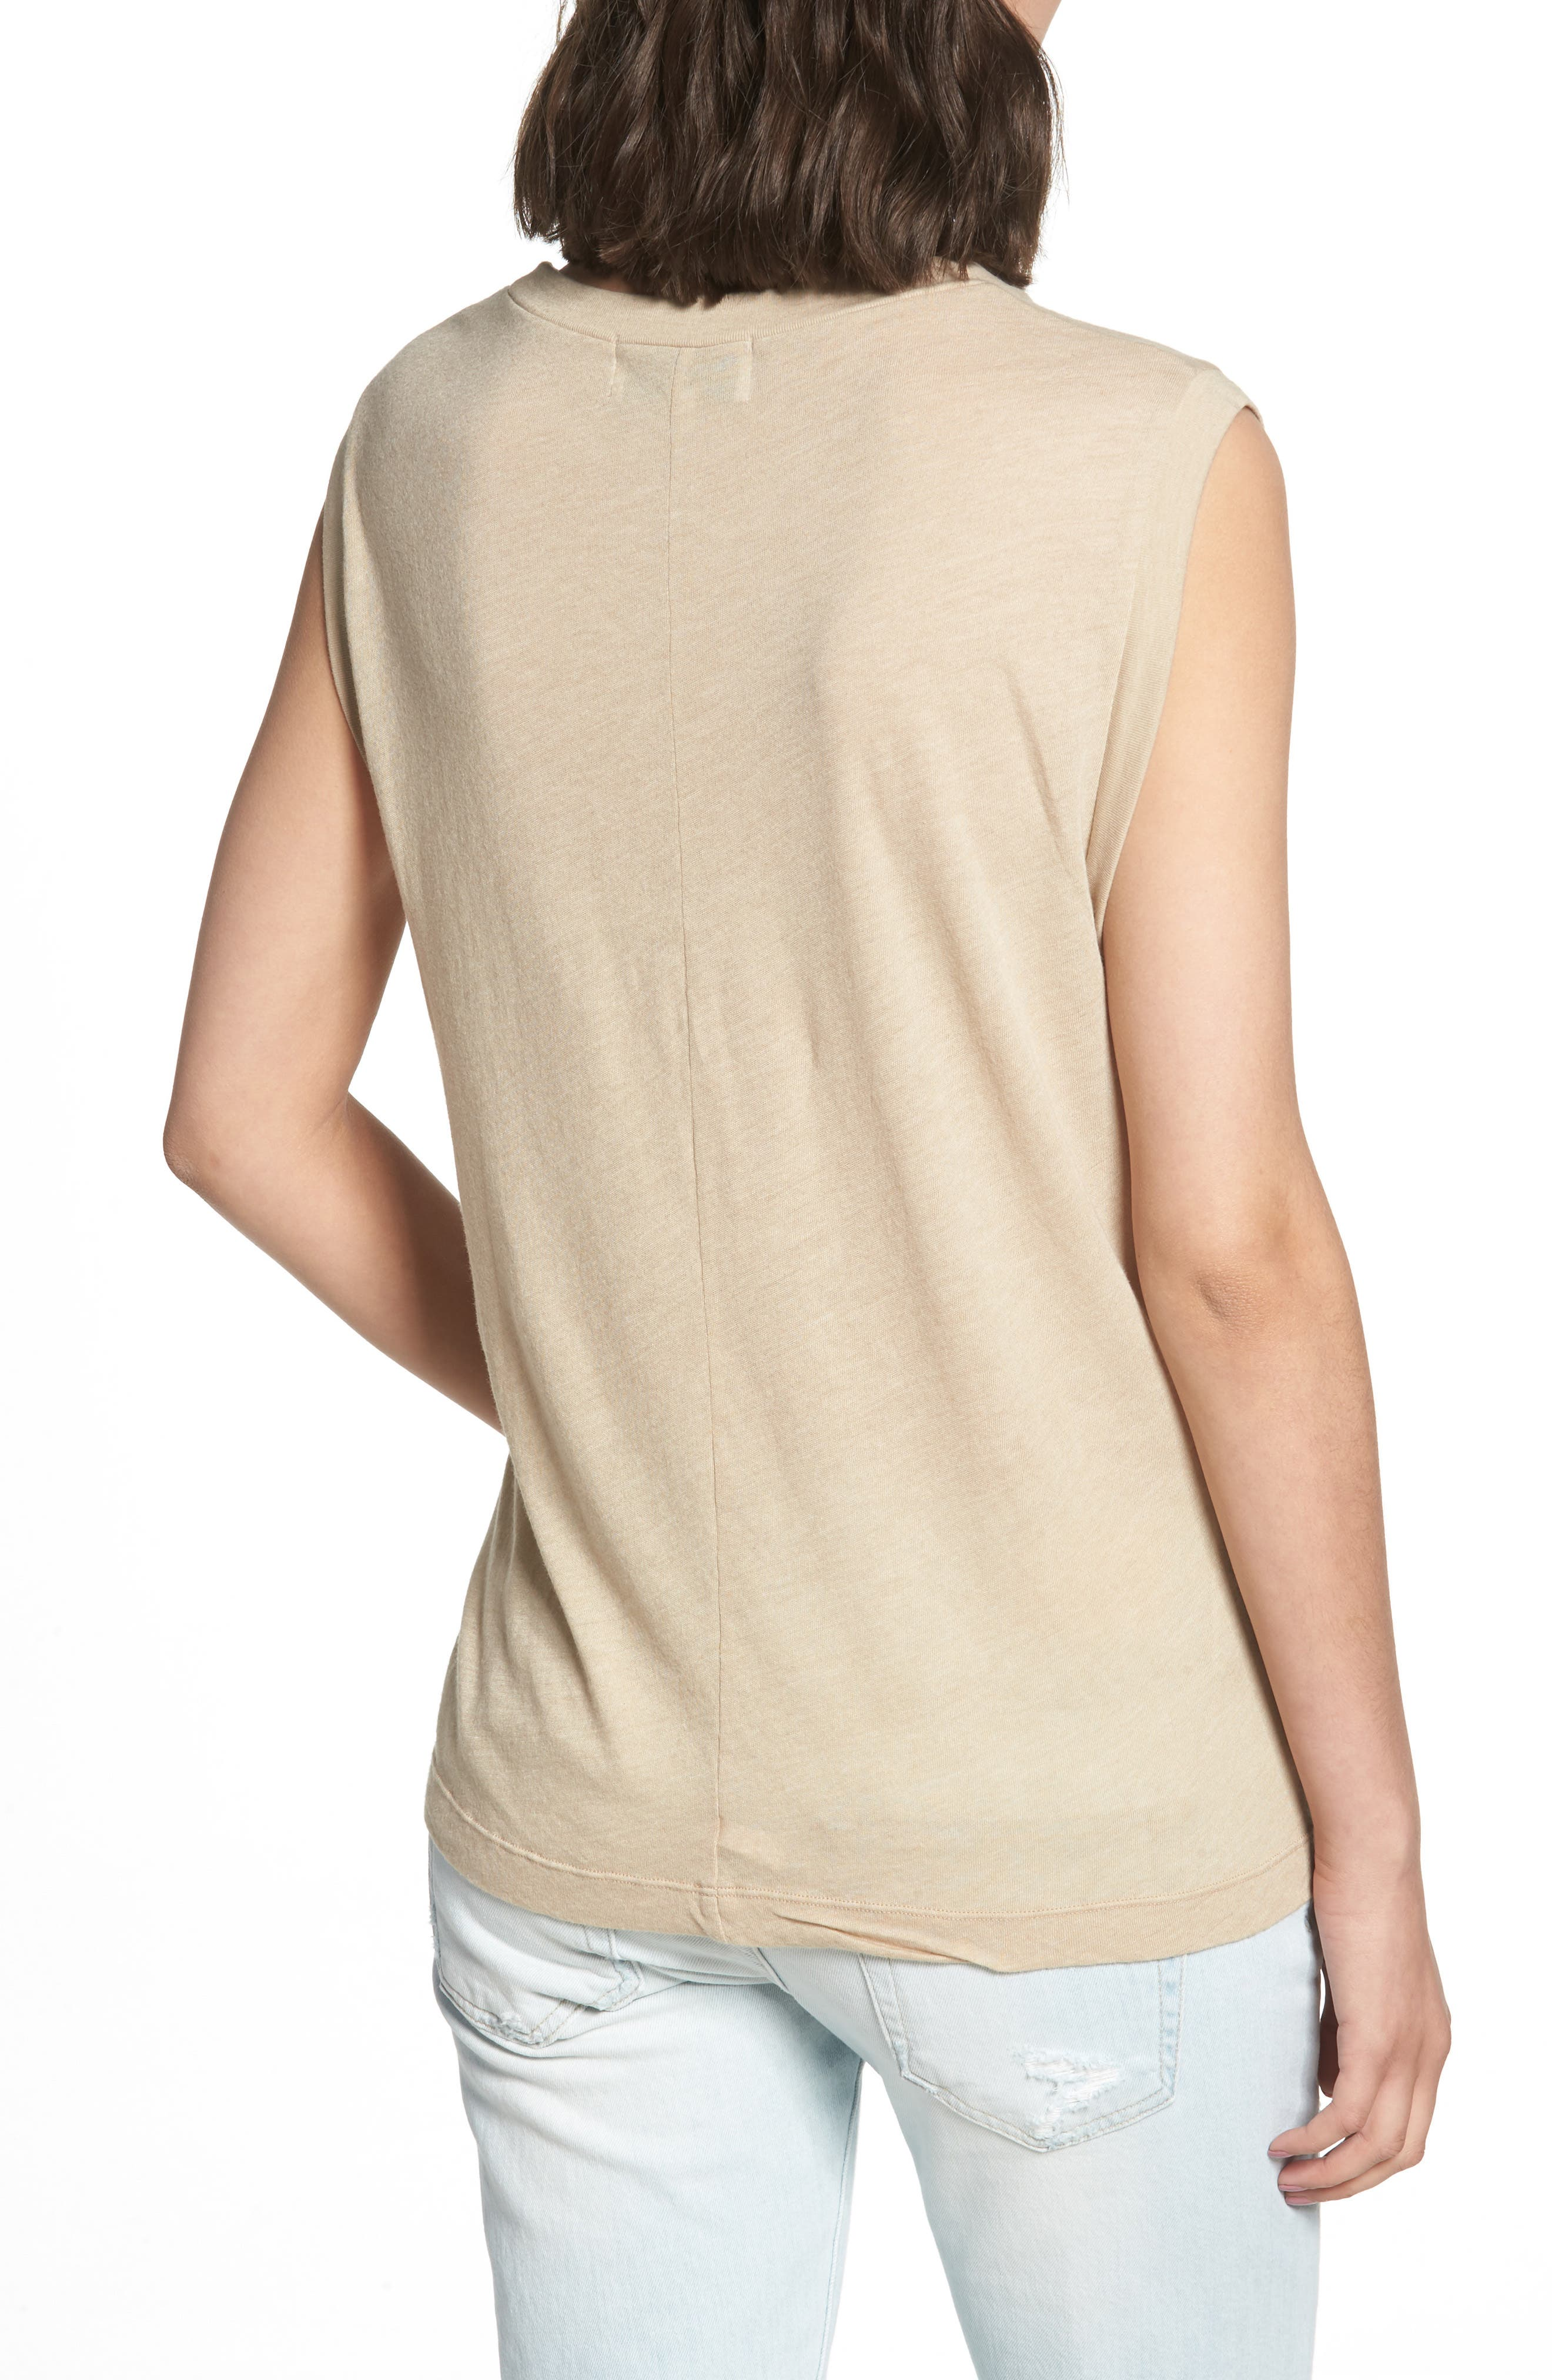 Friday Night Vintage Muscle Tank,                             Alternate thumbnail 2, color,                             250